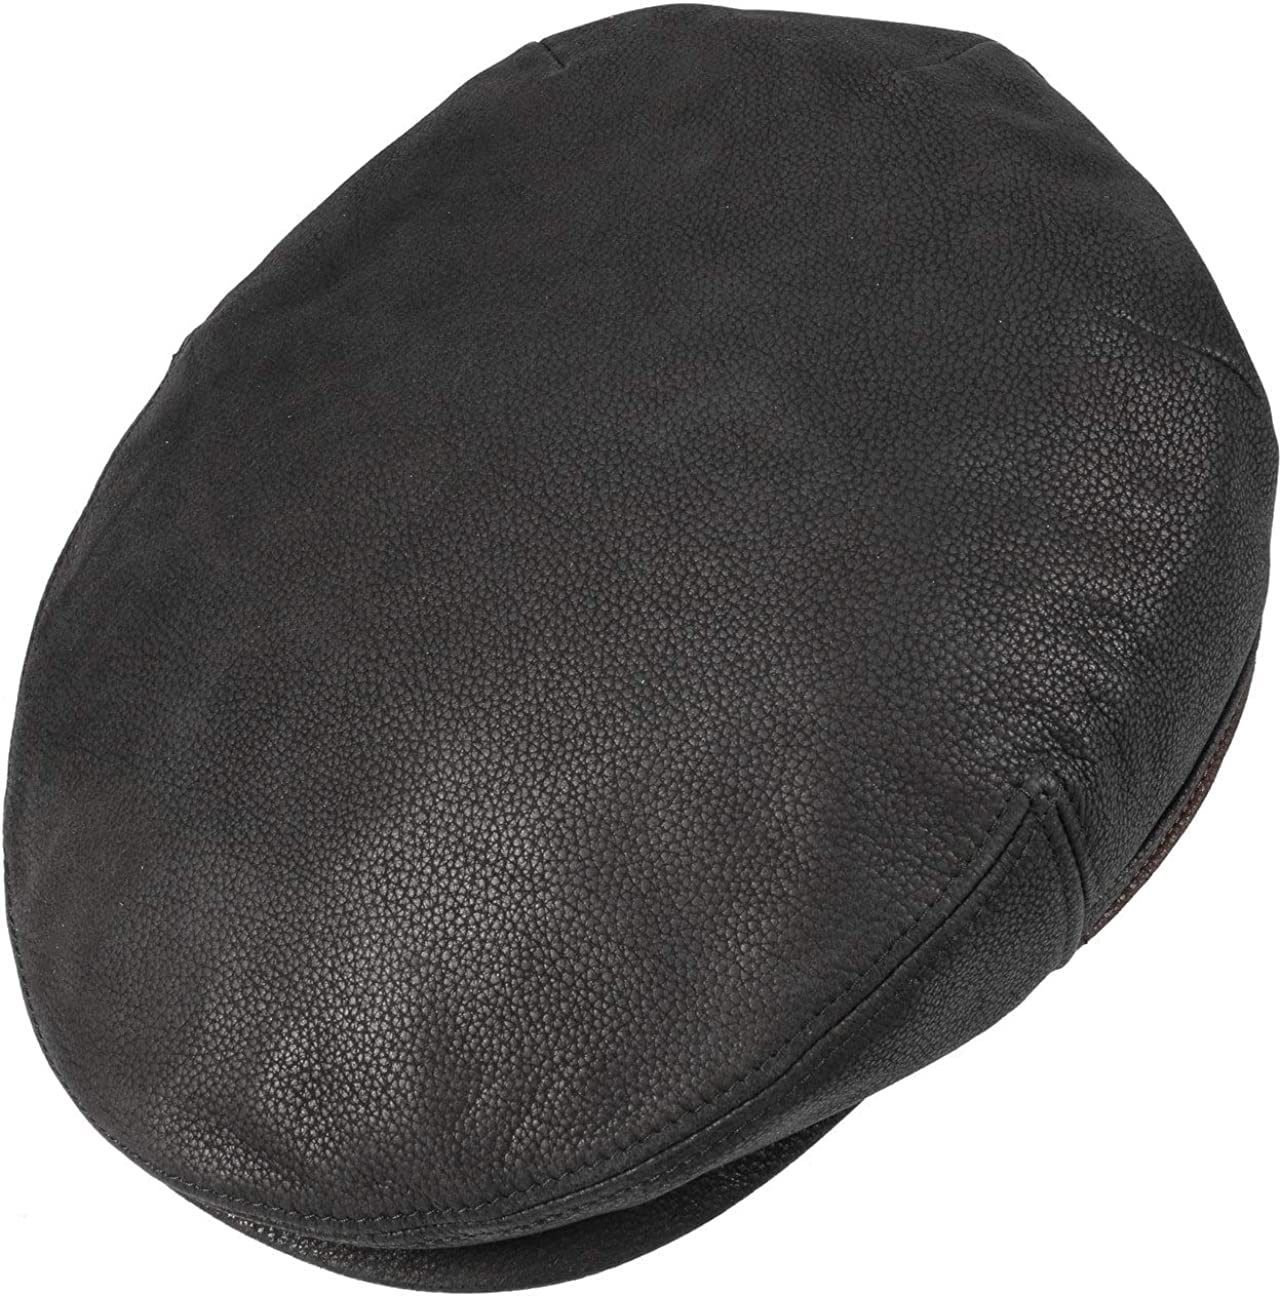 hat Ear Flaps with Peak Stetson Kent Earflaps Leather Flat Cap Men Lining Autumn-Winter Flaps